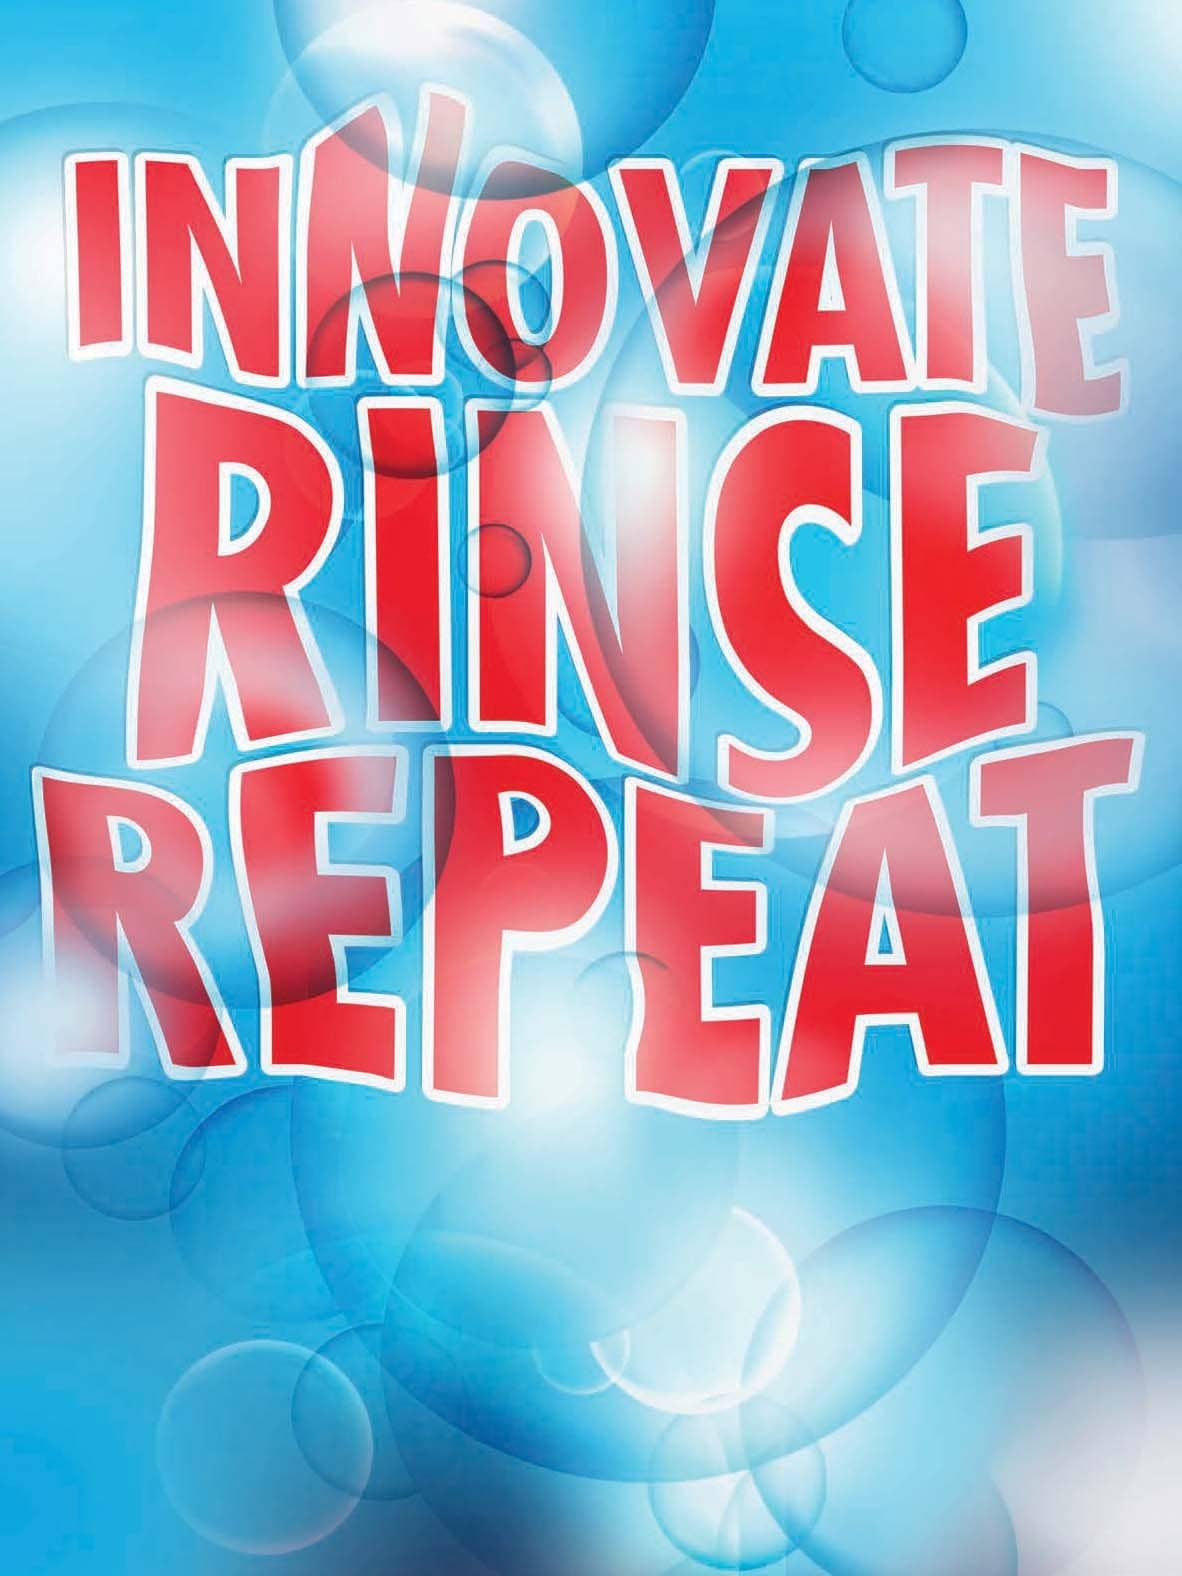 INNOVATE RINSE REPEAT